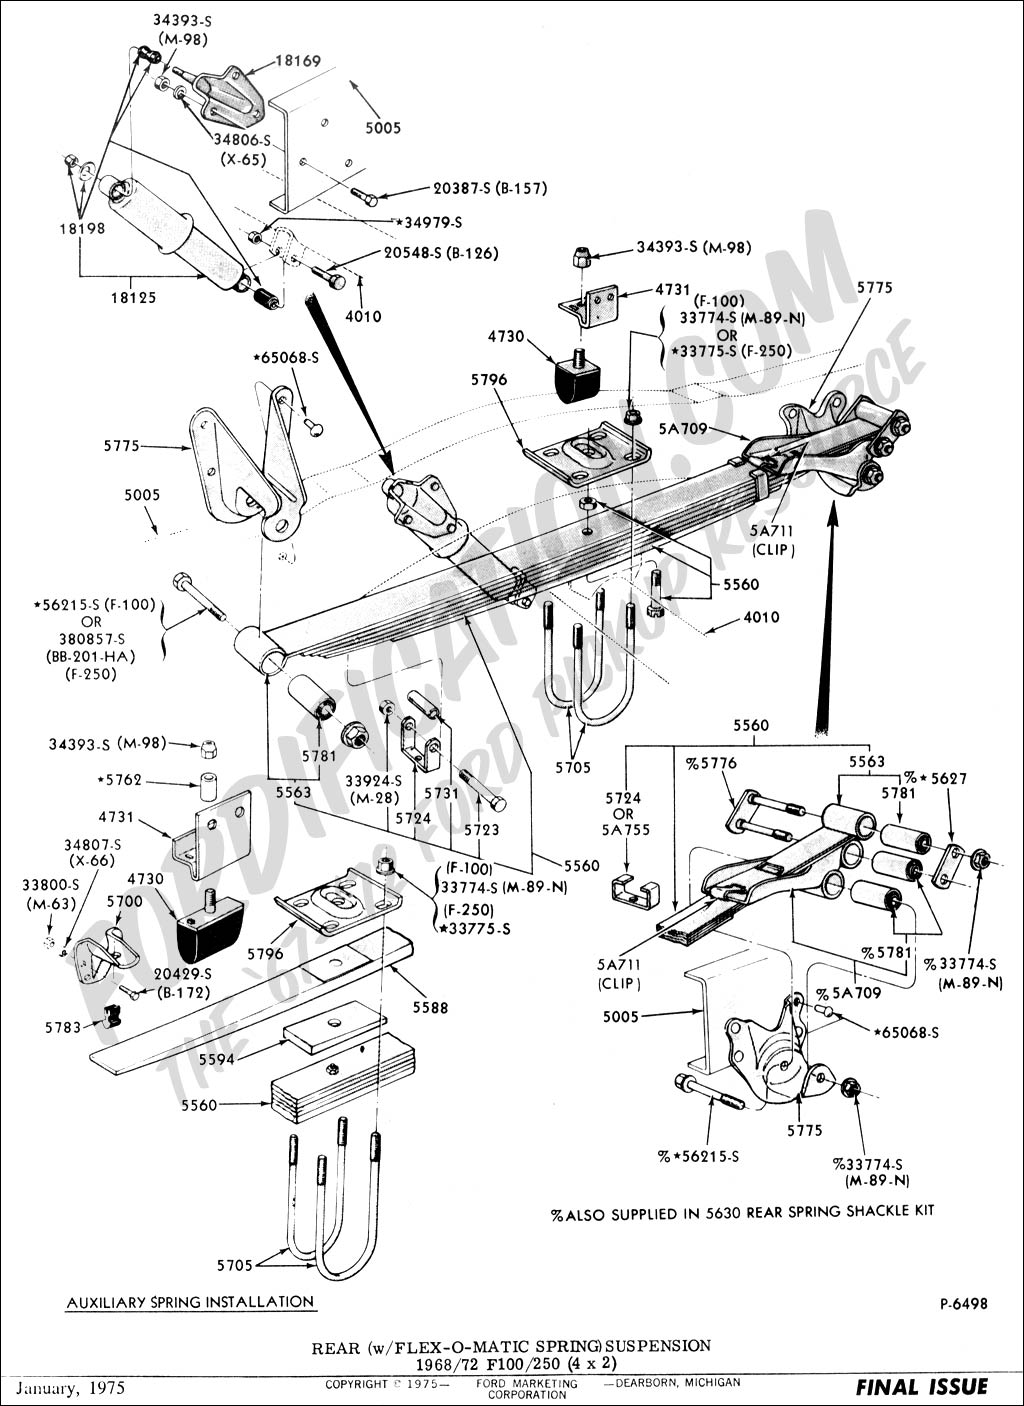 Nissan Sentra Idle Air Control Valve Location 64cb15c31fd5b97a moreover Ford 3 8 V6 Engine Diagram Ford Diy Wiring Diagrams For Ford 4 2l V6 Engine Diagram furthermore Wheres Low Pressure C 96 A 59859 besides Discussion T663 ds577246 also Options Bad Ac  pressor 59245. on 2004 dodge truck wiring diagram